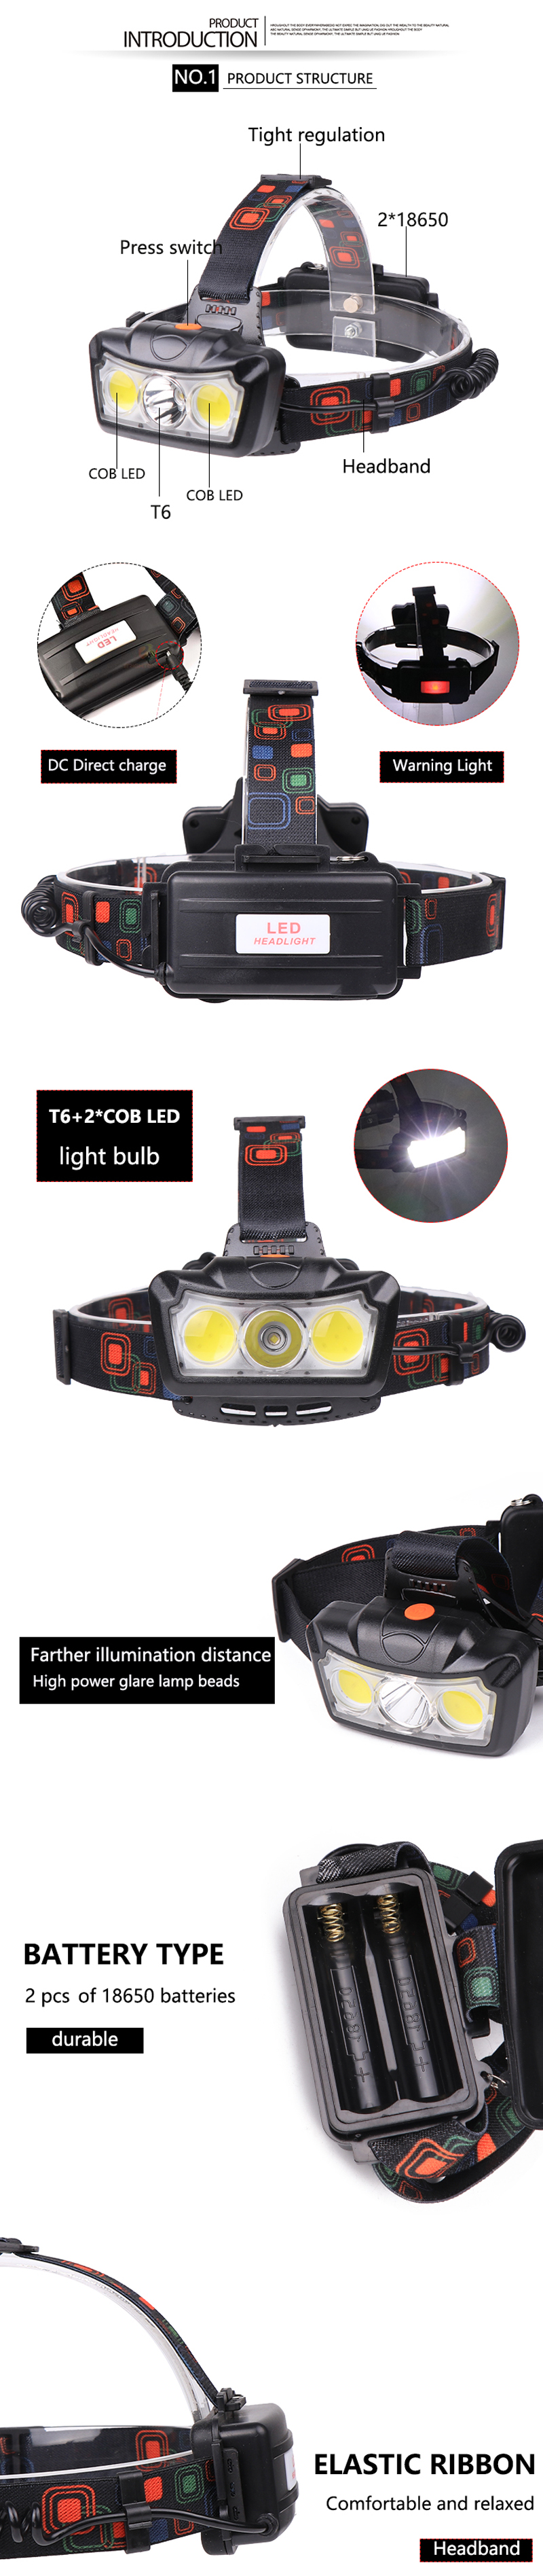 XANES® 1300LM T6+2xCOB LED HeadLamp Waterproof 4 Modes Outdoor Running Camping Hiking Cycling Light 2x18650 DC Rechargeable Interface